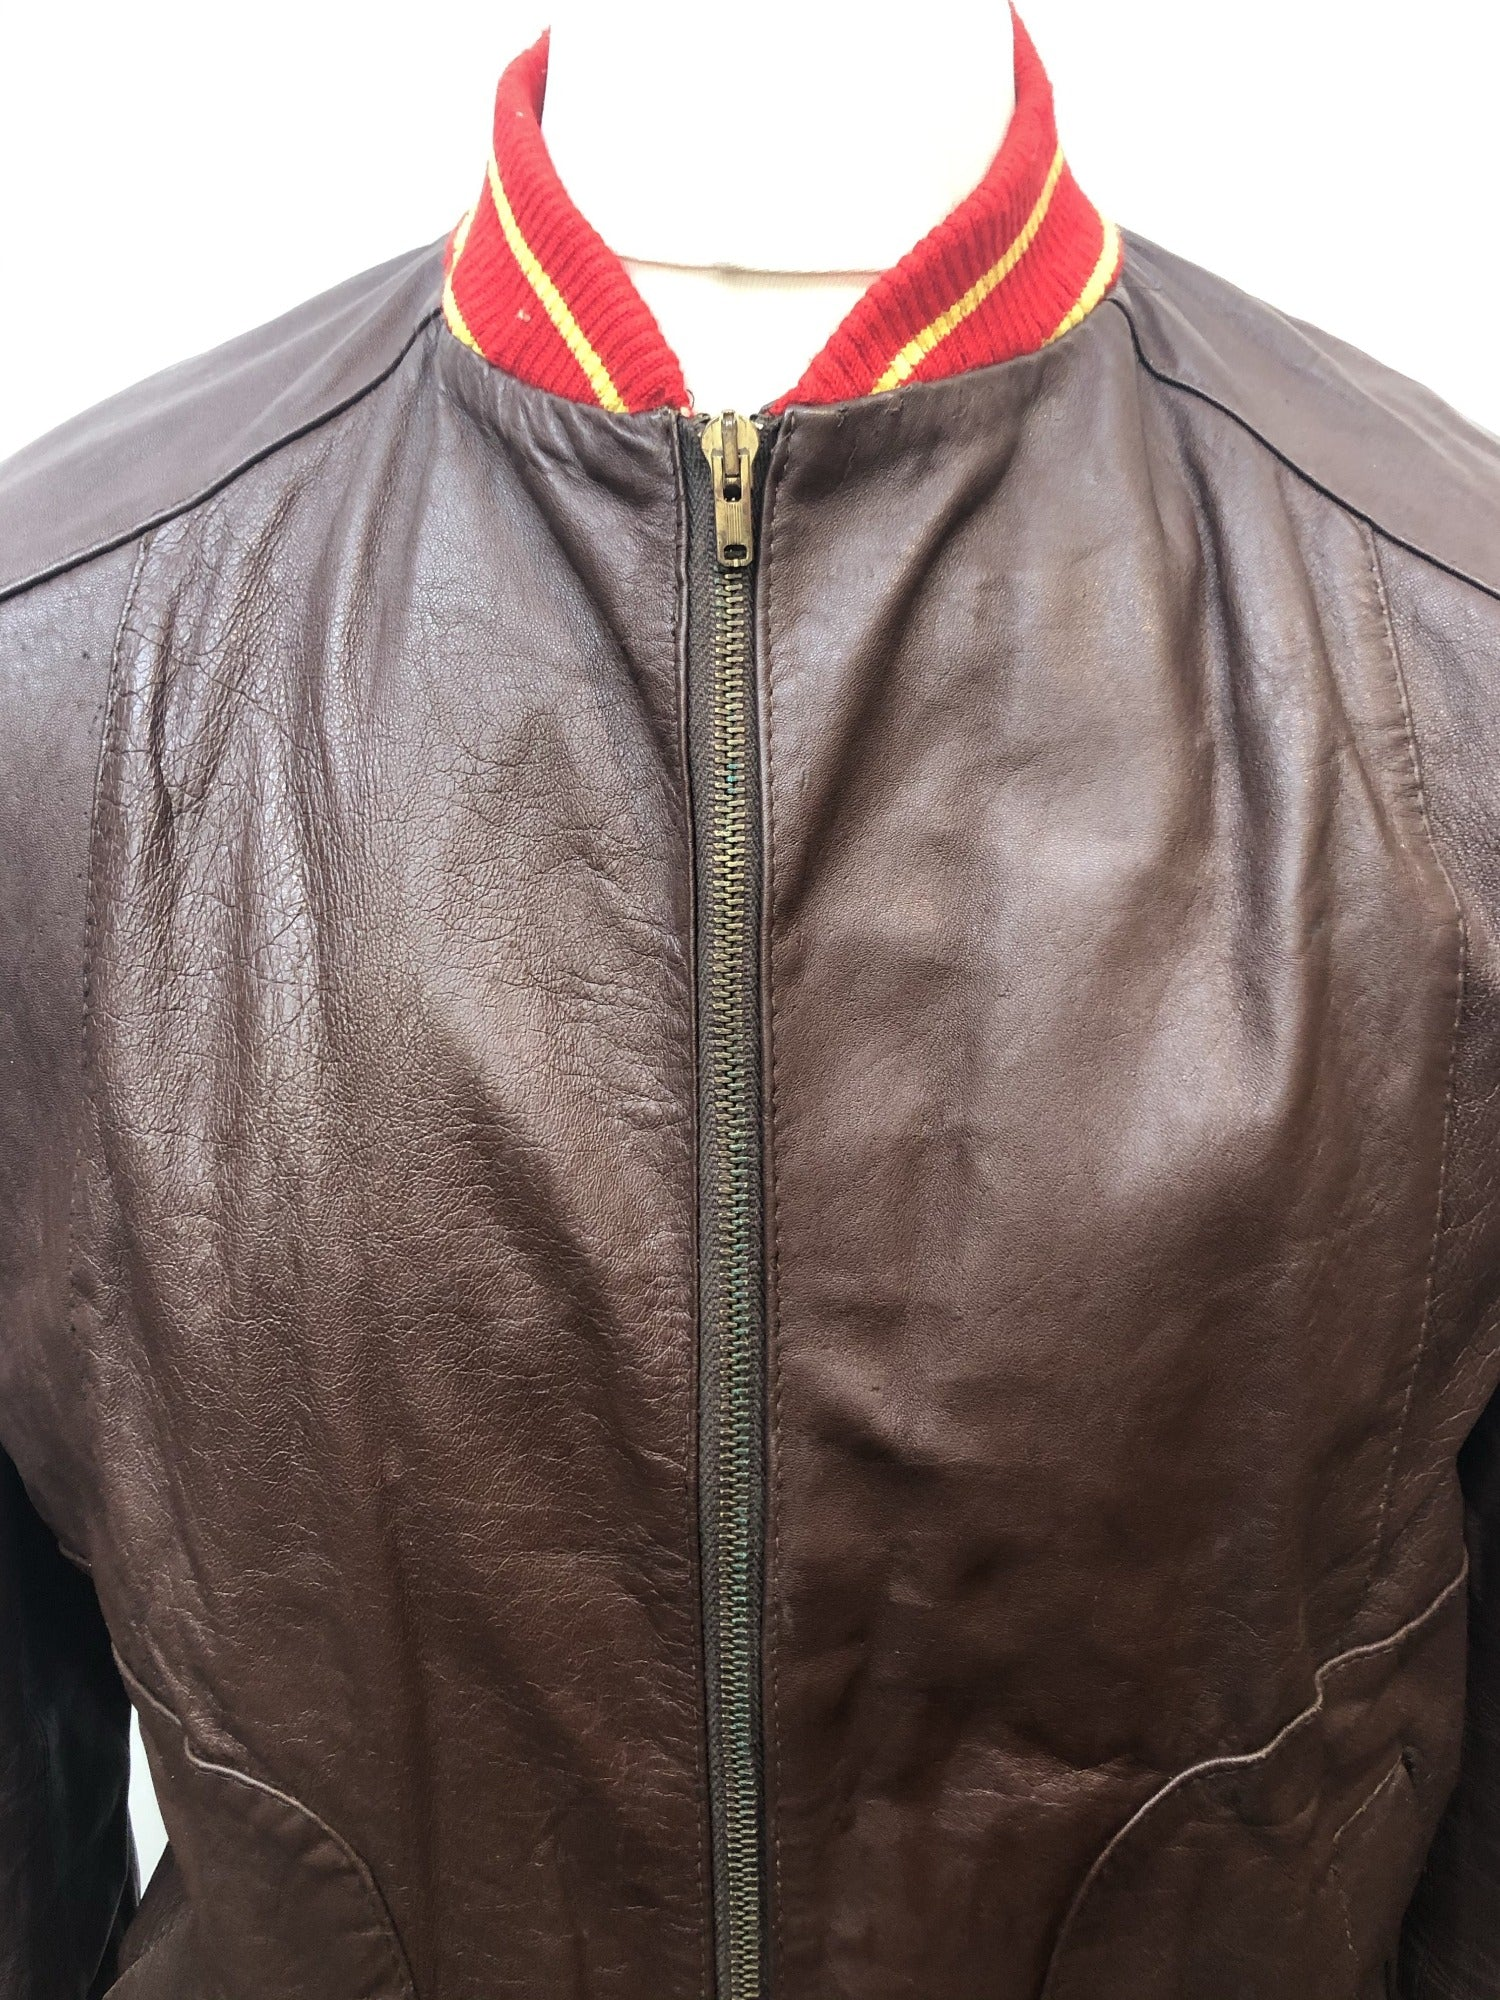 vintage  village  urban  Mens Bomber jacket  mens  leather  Jacket  Irvine Sellars  brown leather  brown  bomber jacket  bomber  70s  1970s